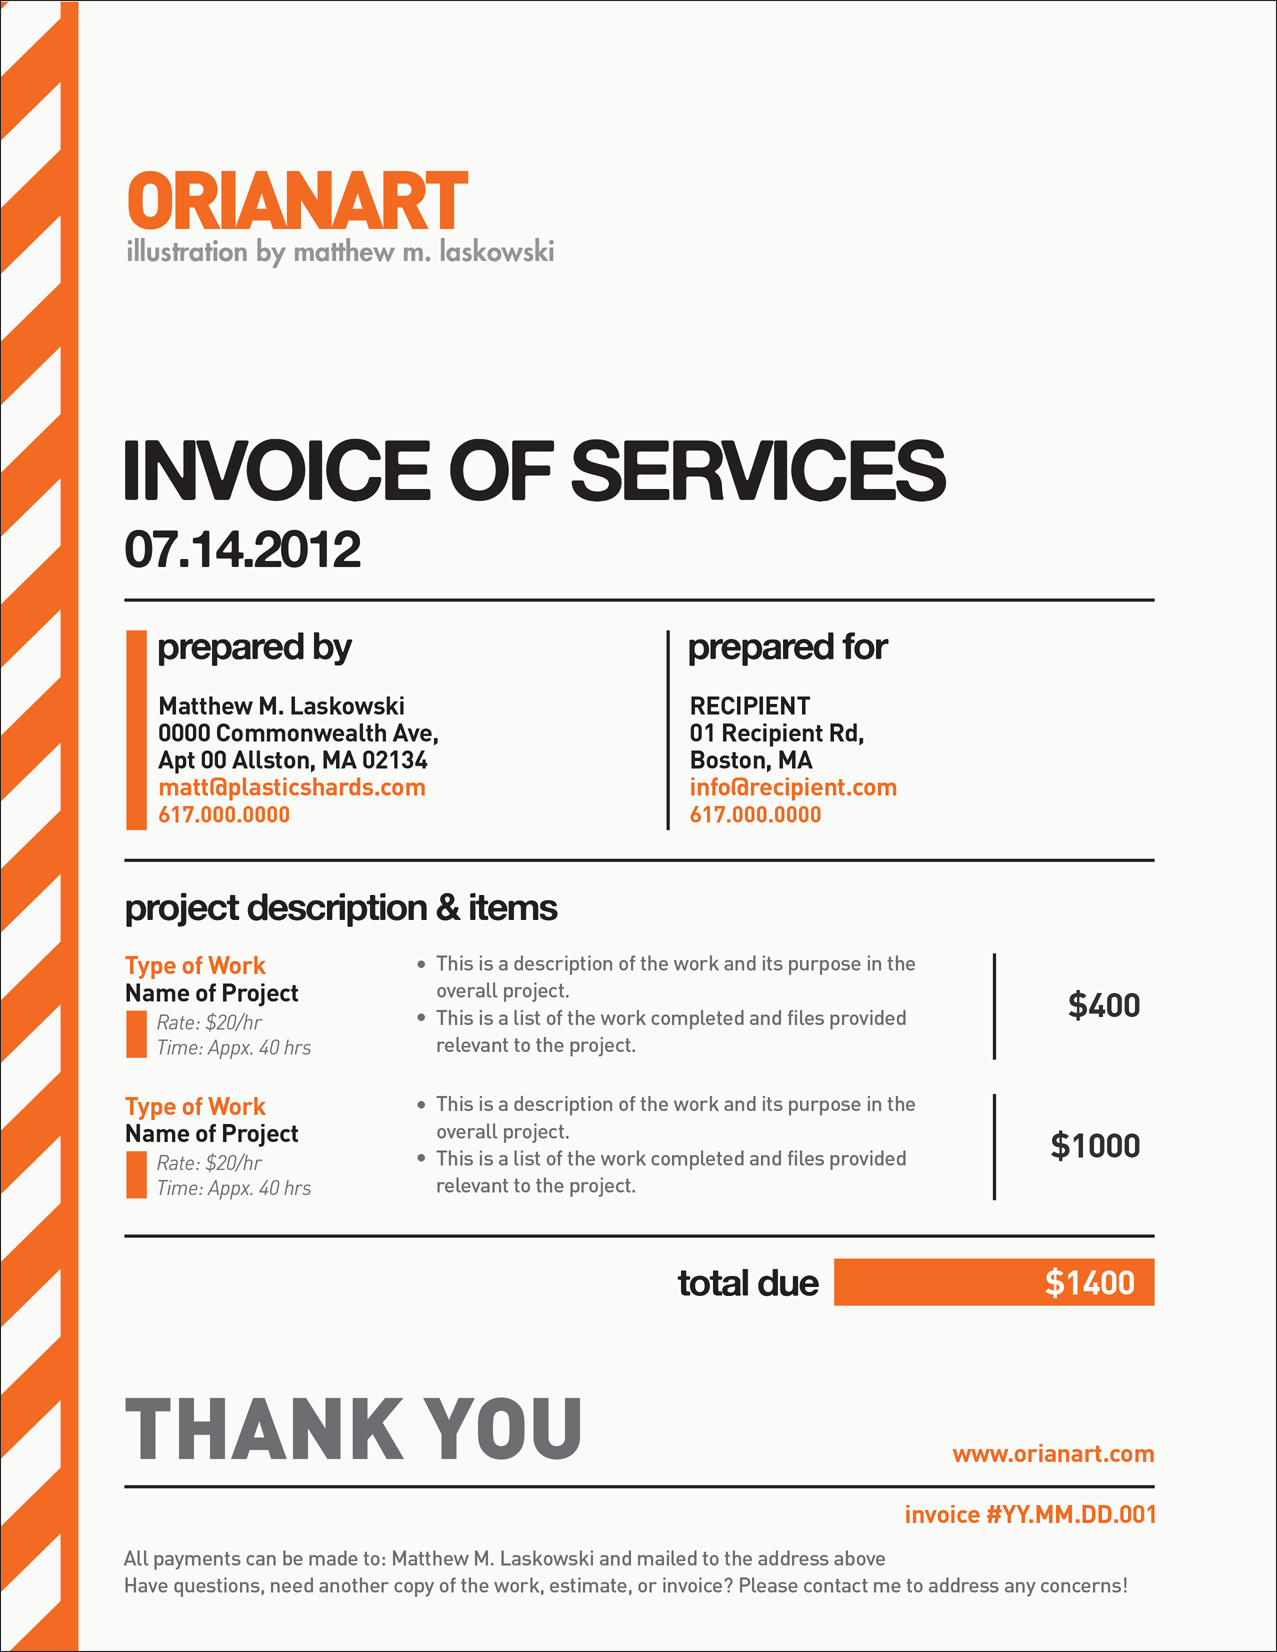 Here's A Blank Example Of The Invoice That I Send To Clients After With Regard To Invoice Template For Graphic Designer Freelance